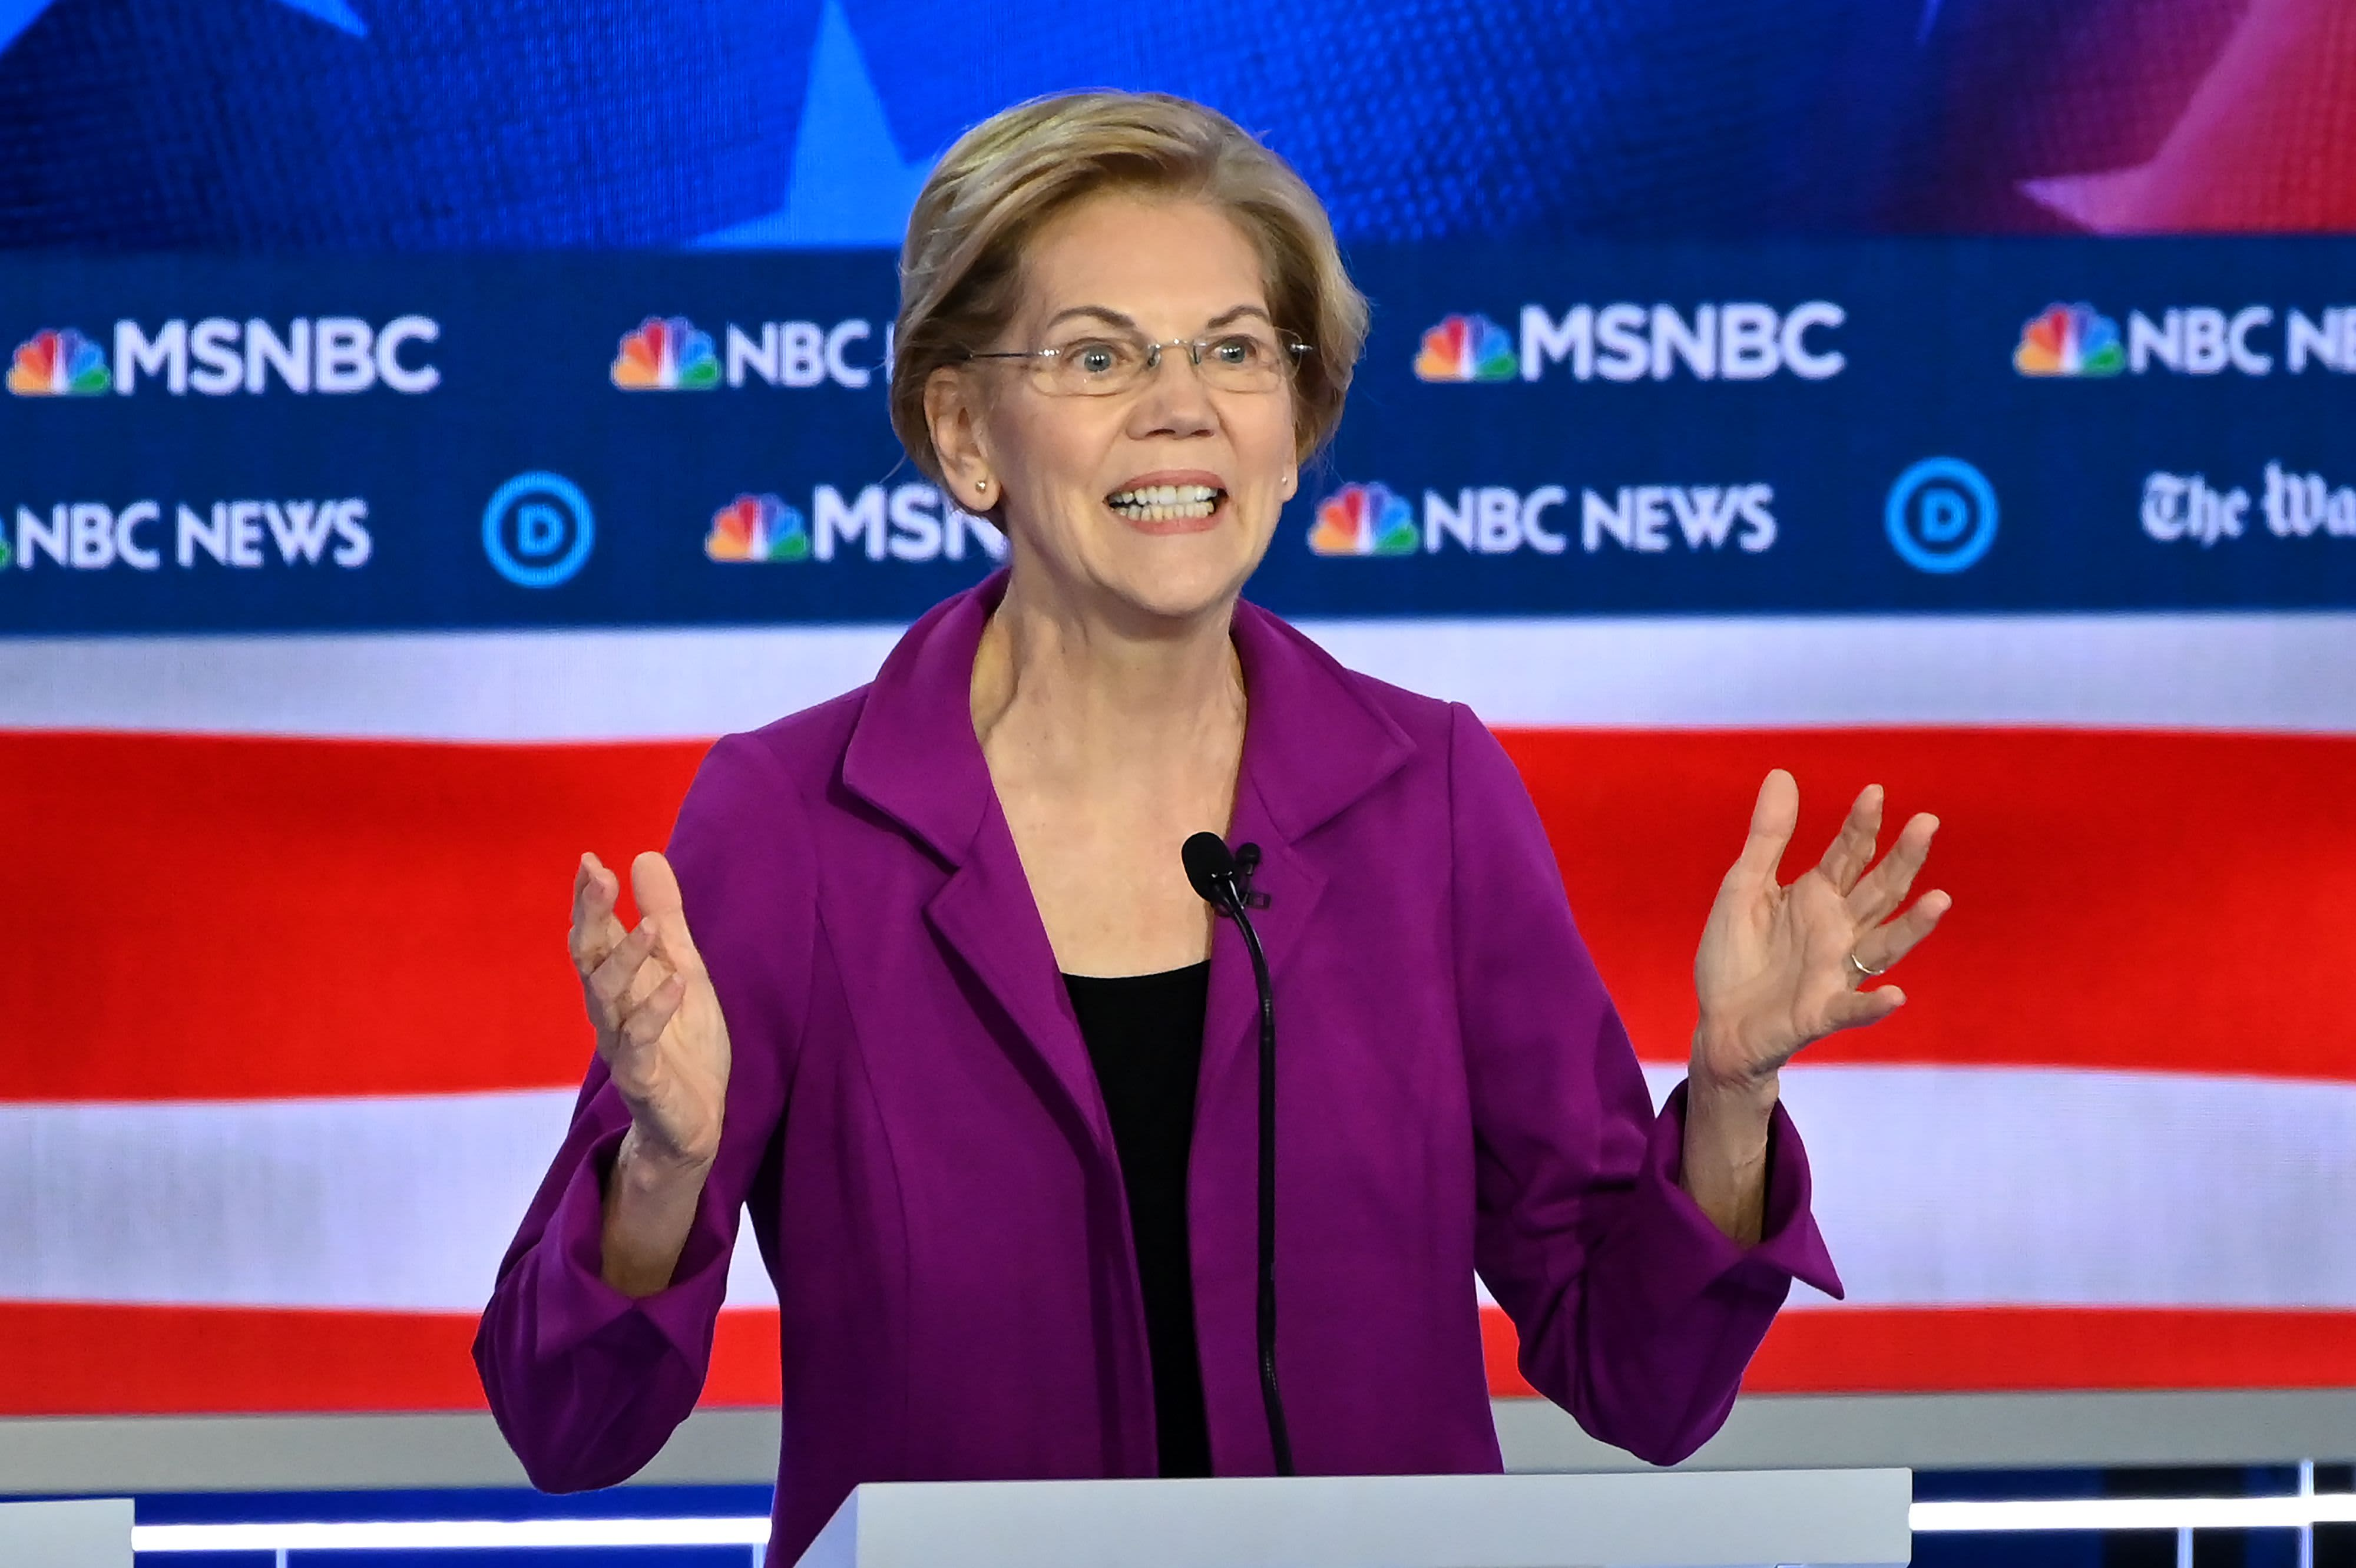 Elizabeth Warren pushes her wealth tax plan as a way to unite the country during Democratic primary debate